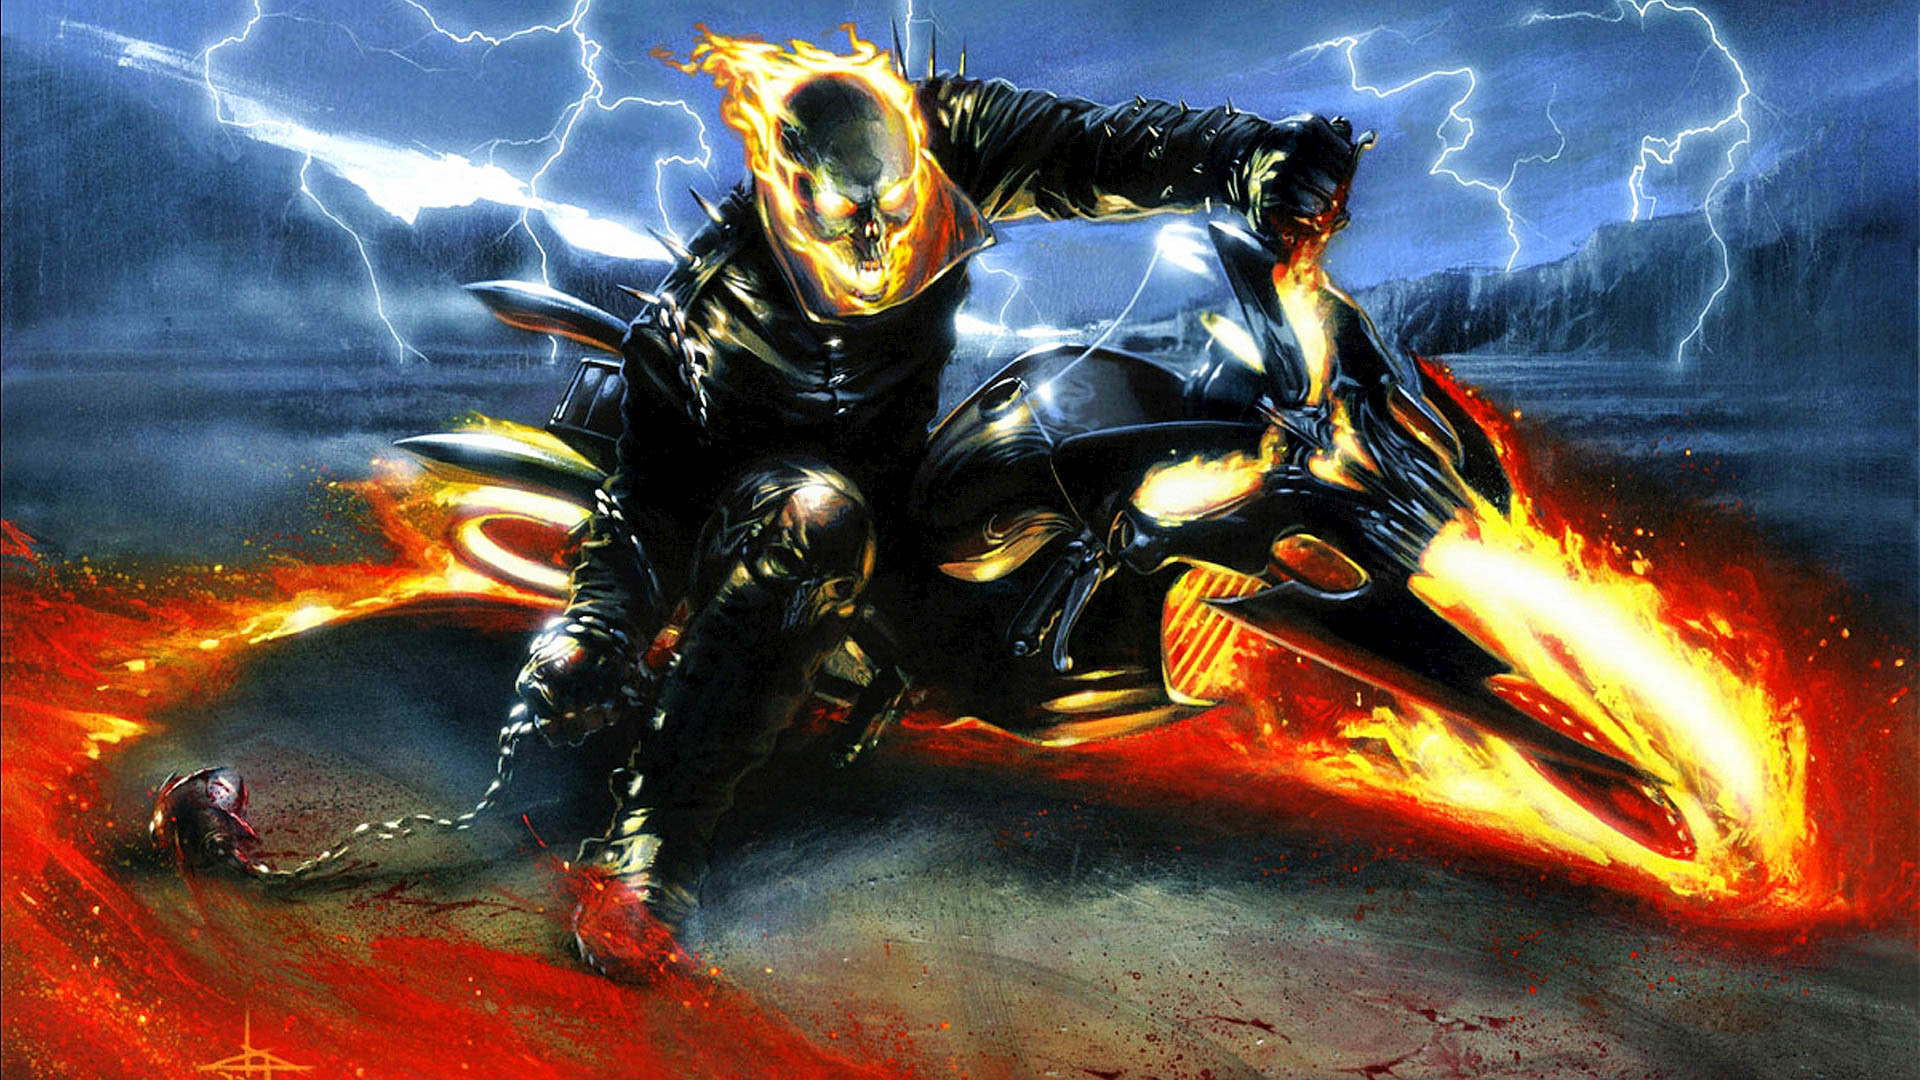 ghost rider hd wallpaper download - drive.cheapusedmotorhome